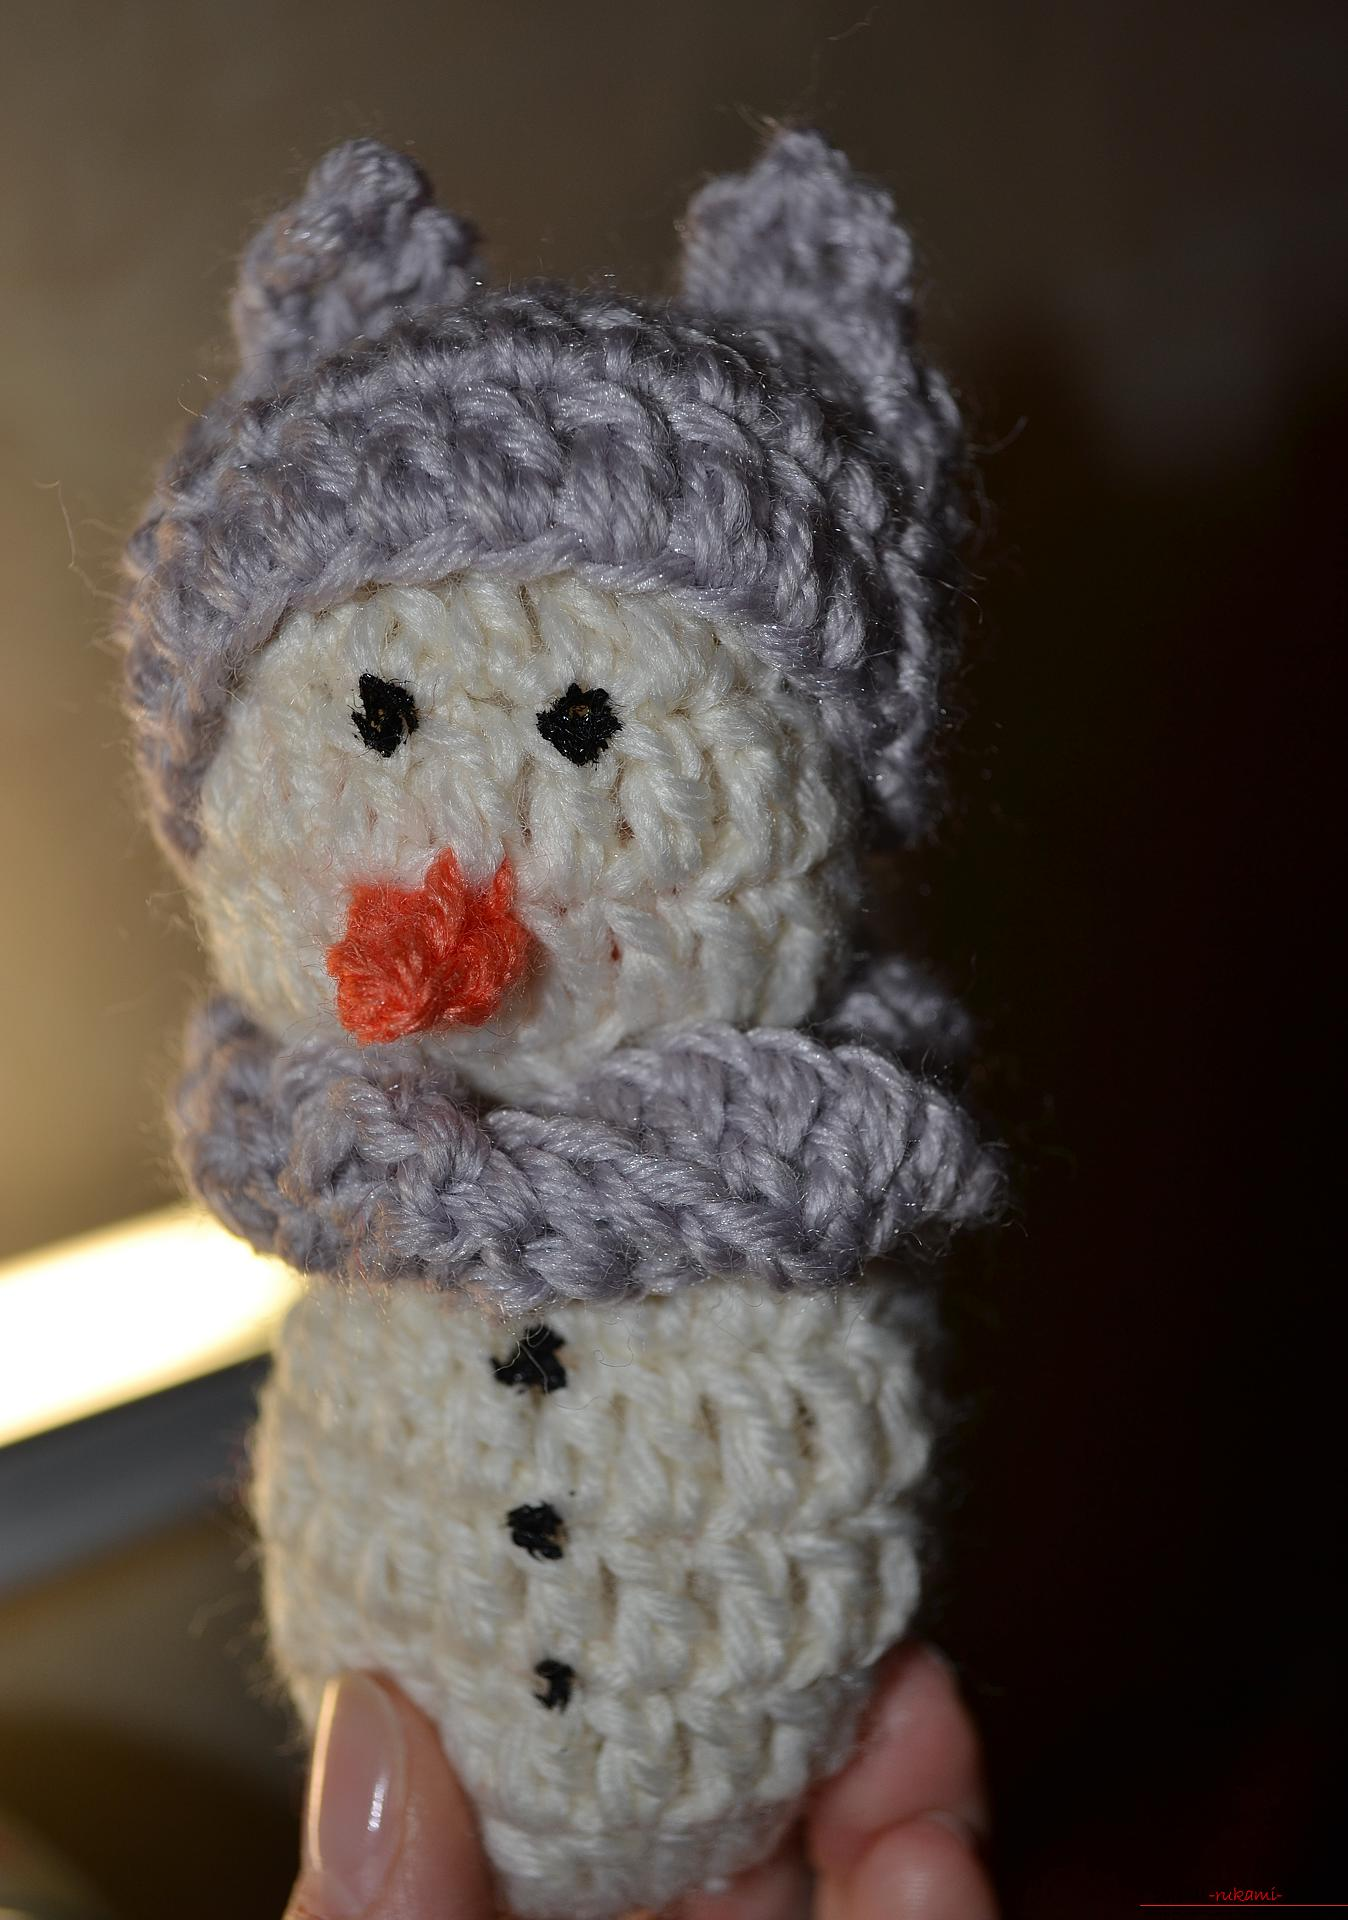 A master class with a photo and description will teach the crocheting of a snowman, which will be understandable for beginners. Photo number 12